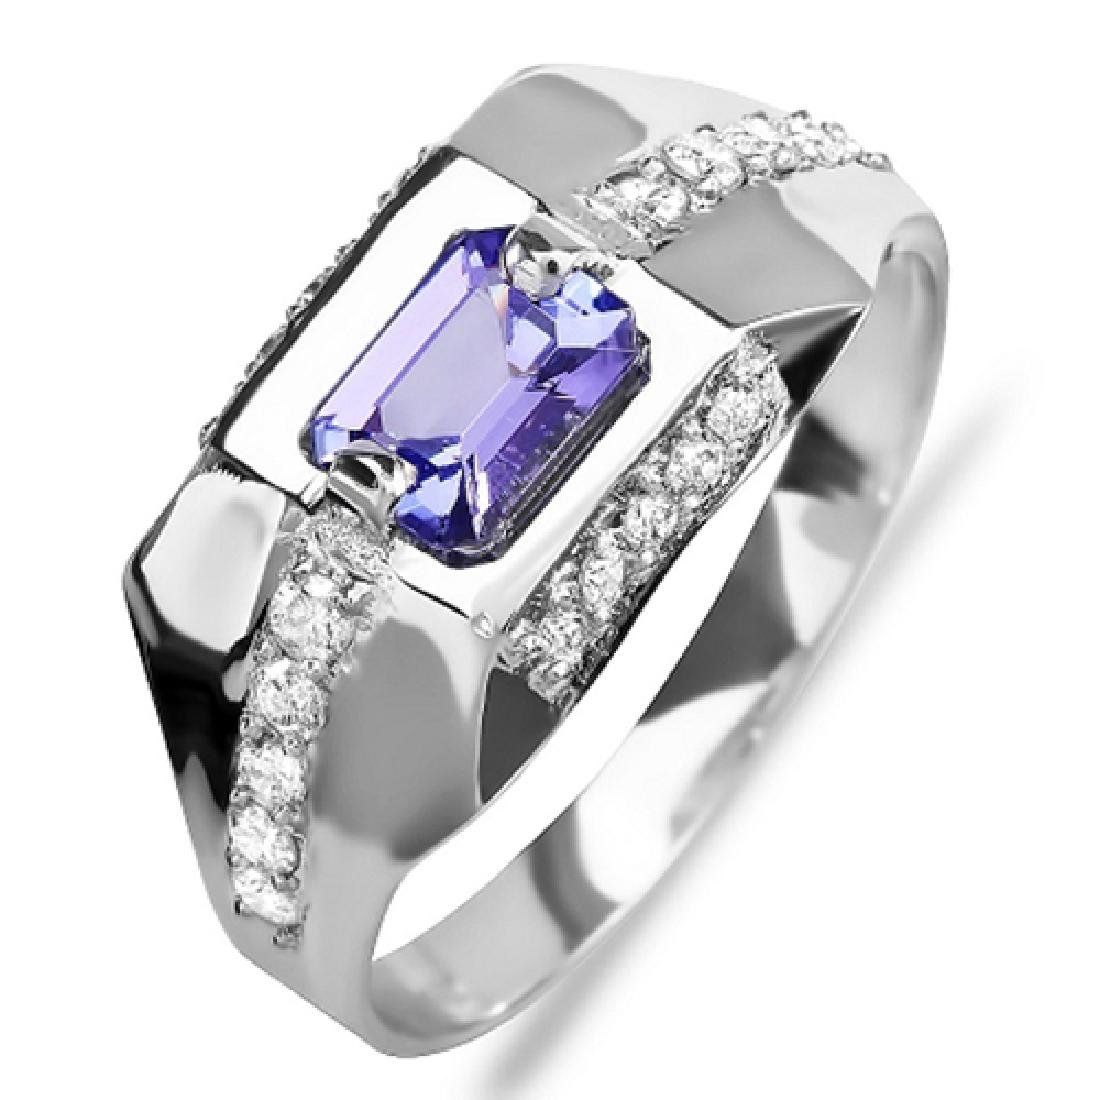 1.42 Carat Natural Sapphire 18K Solid White Gold